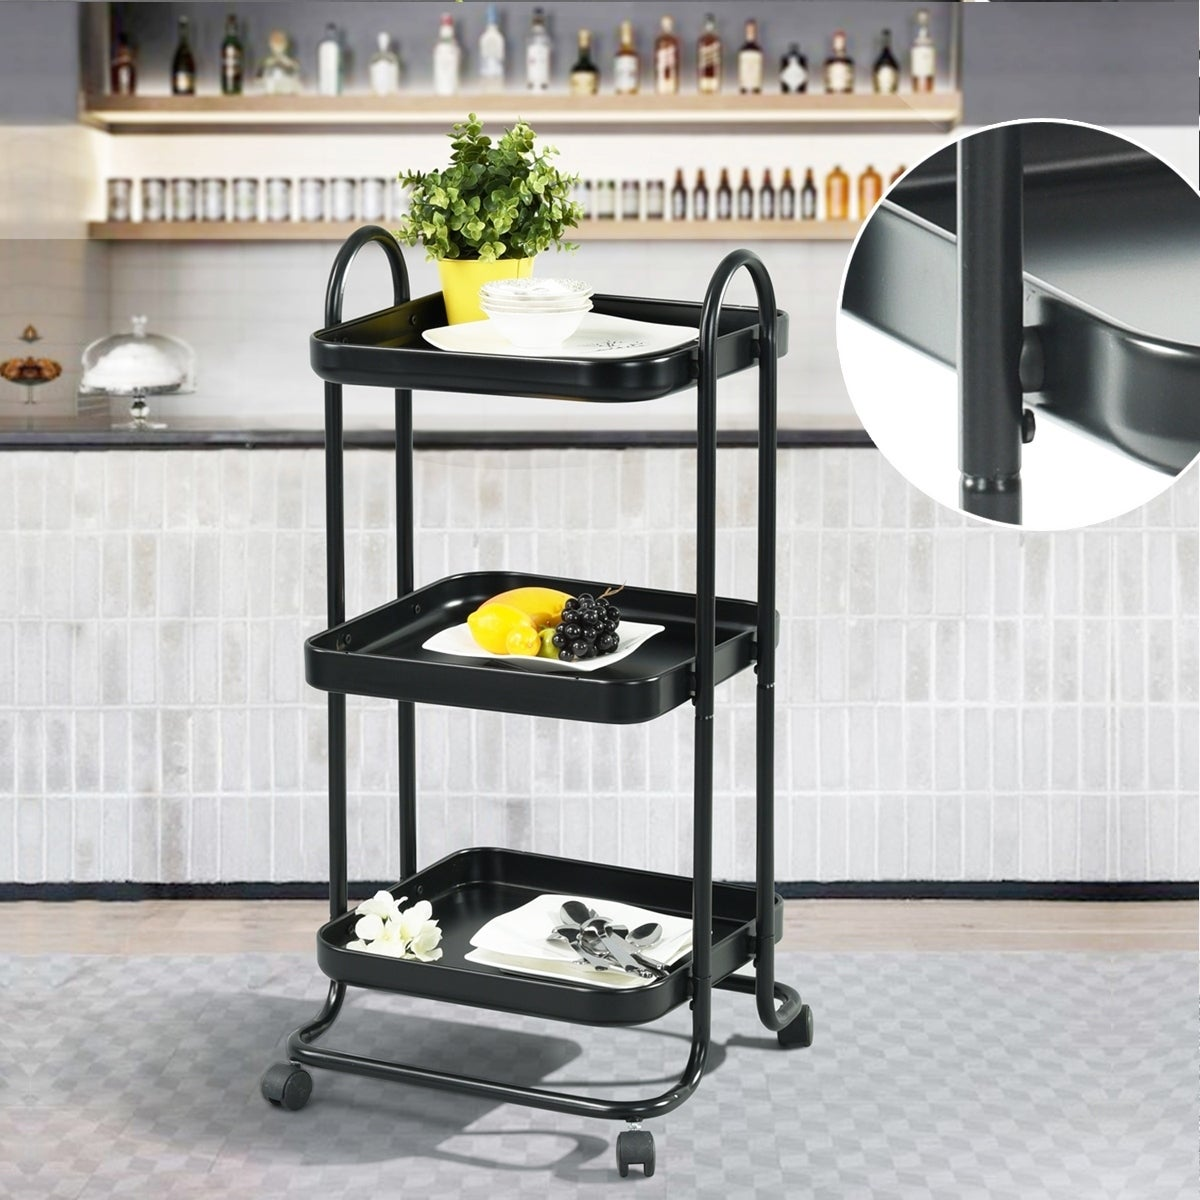 FurnitureR 3 Tiers Rolling Trolley Kitchen Cart with Wheels Black